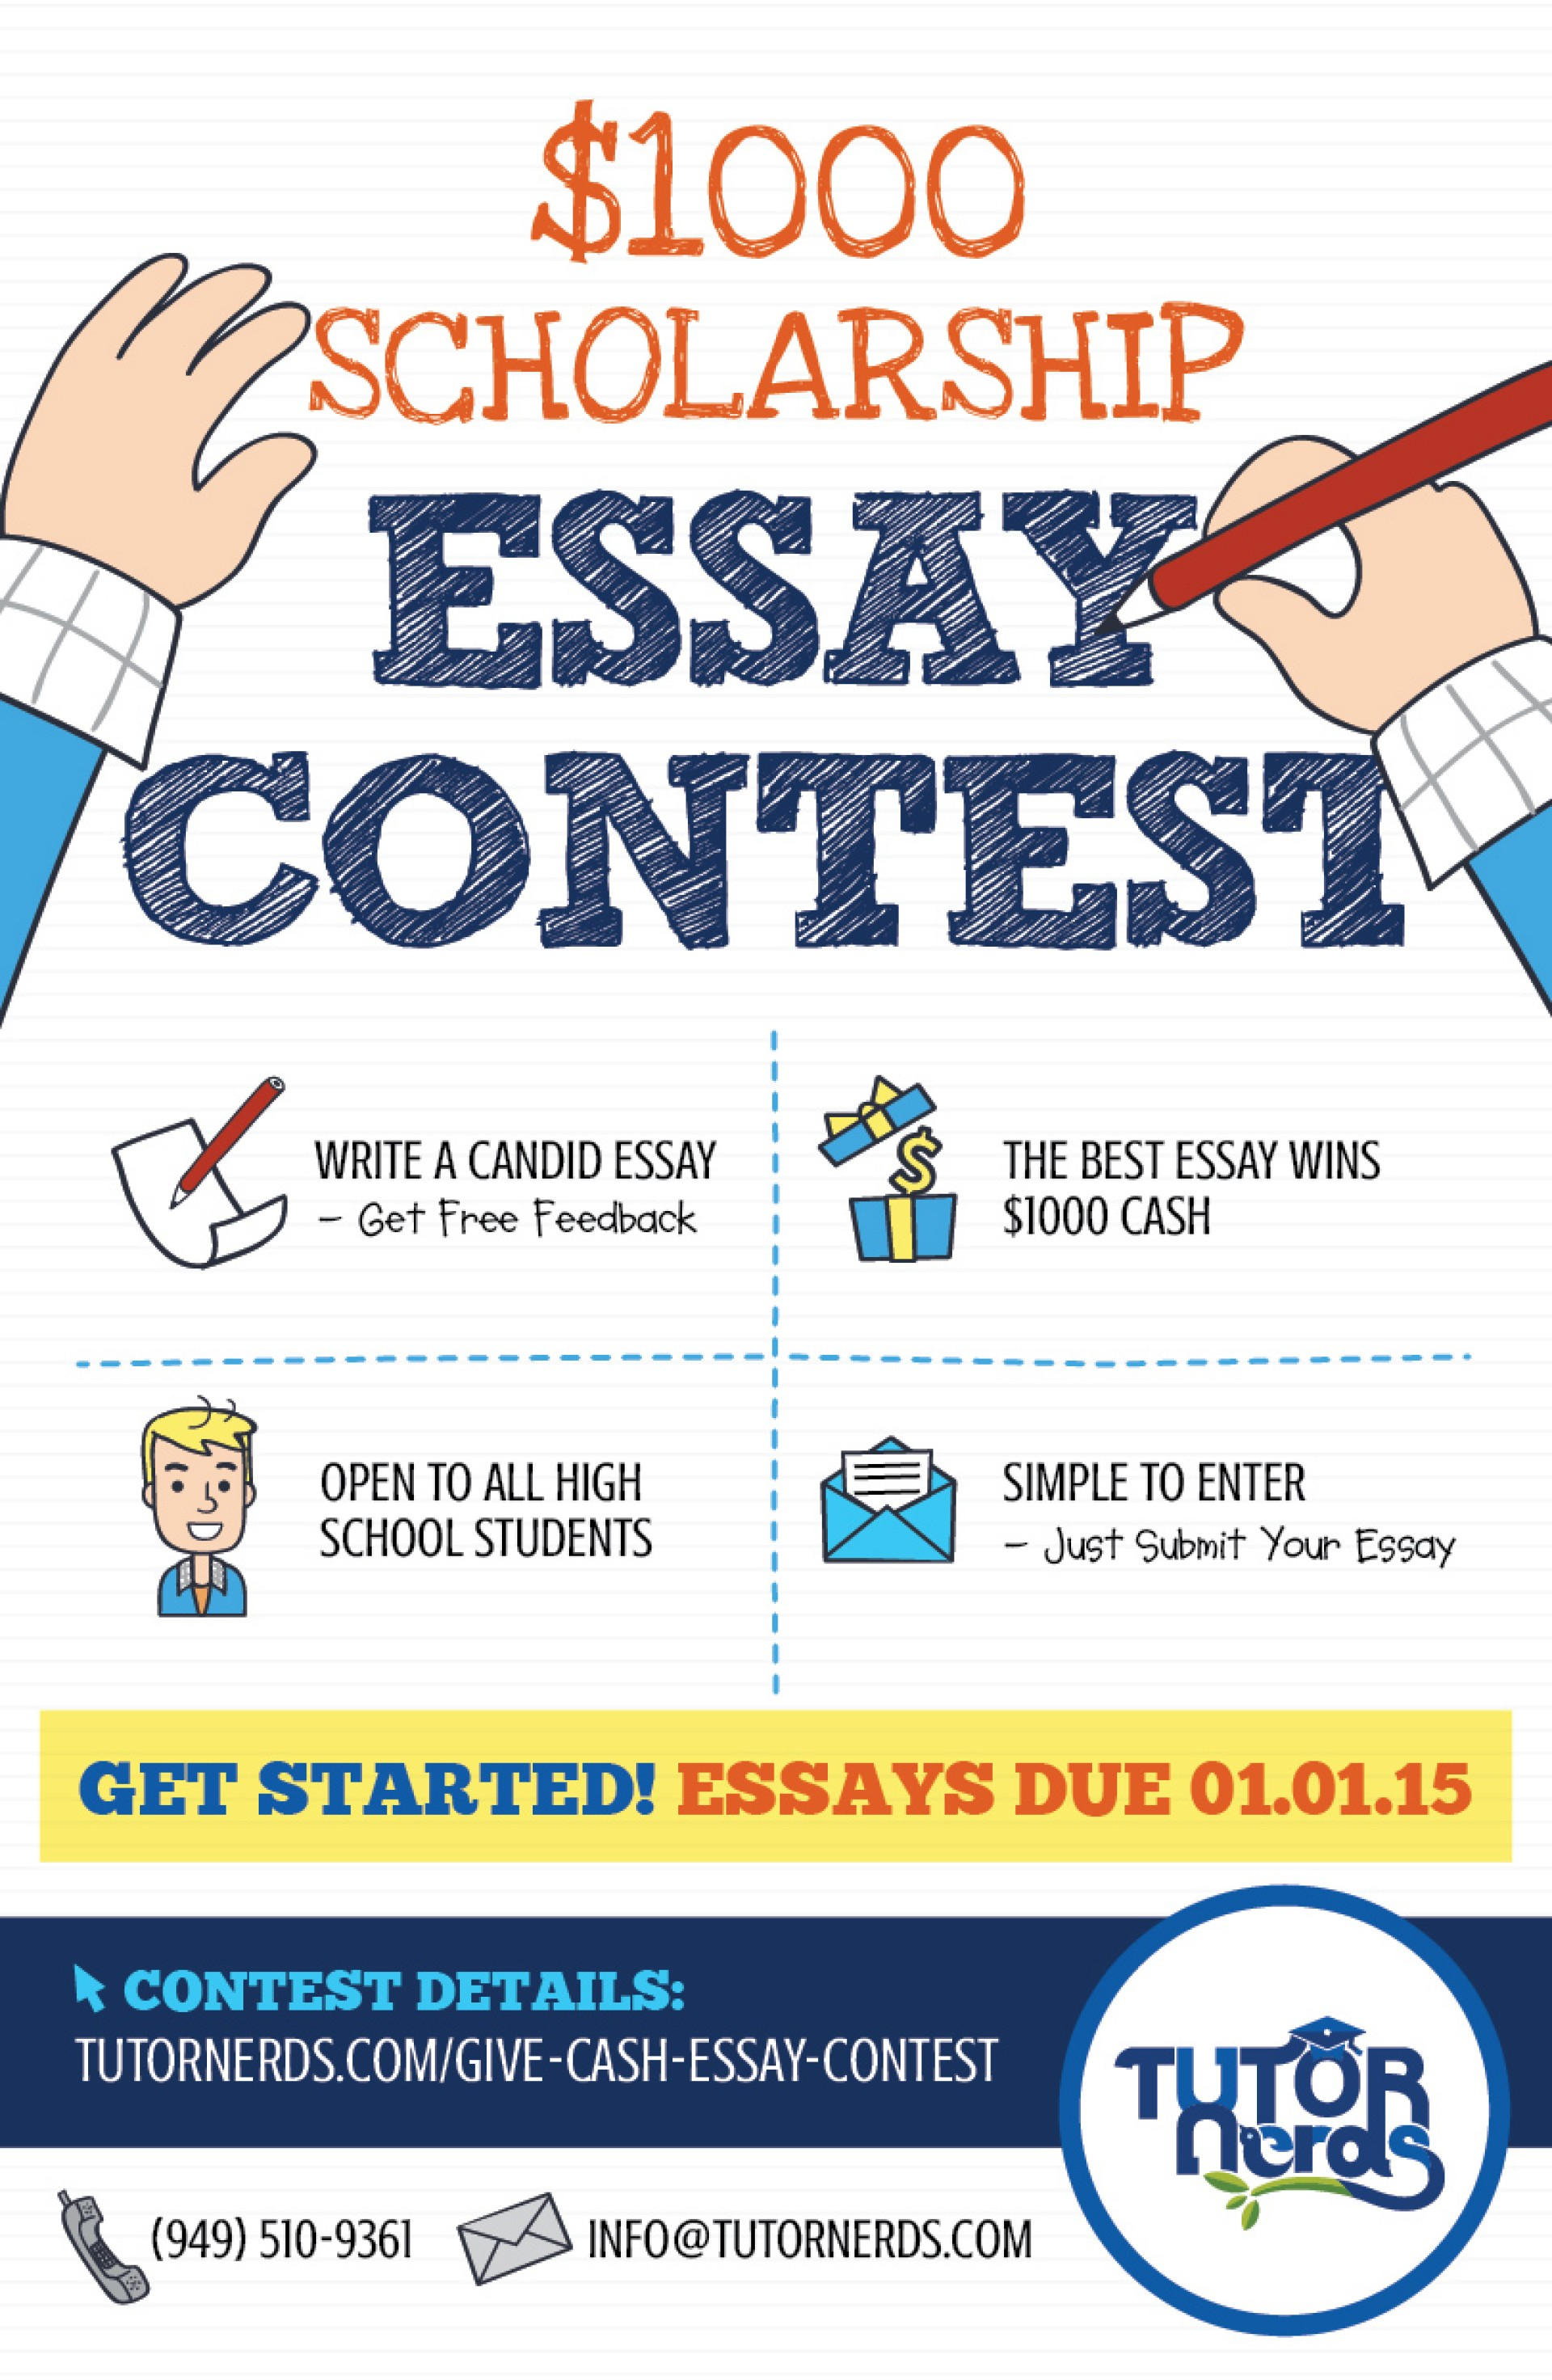 020 High School Essay Contests Example Law Students College Paper Service Competitions For Post April International Fascinating Contest Winners 2019 Scholarships 1920